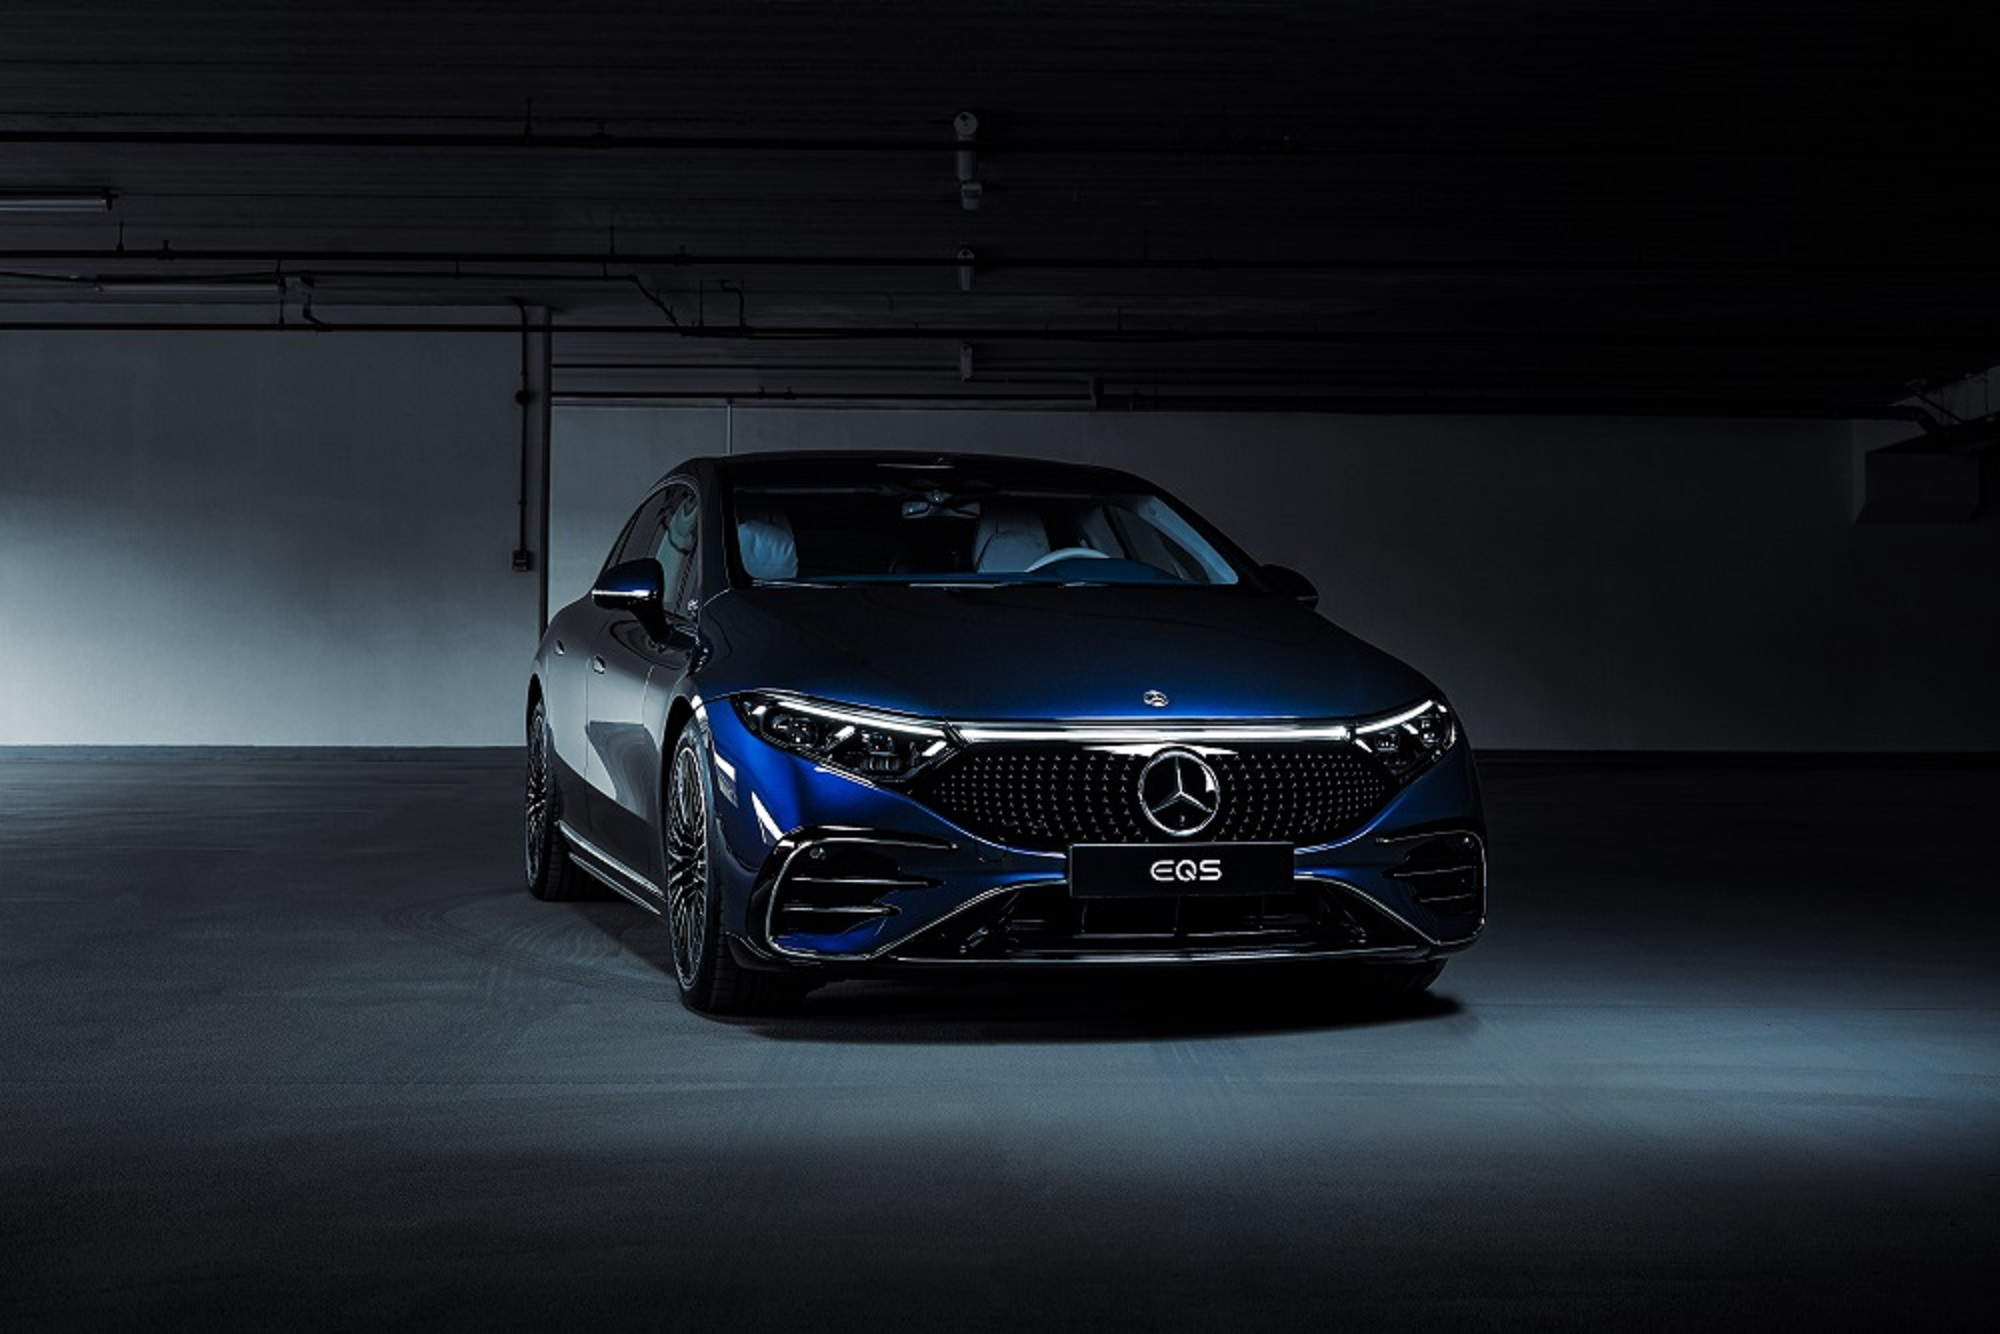 THE MERCEDES-BENZ EQS GETS UNVEILED IN ABU DHABI